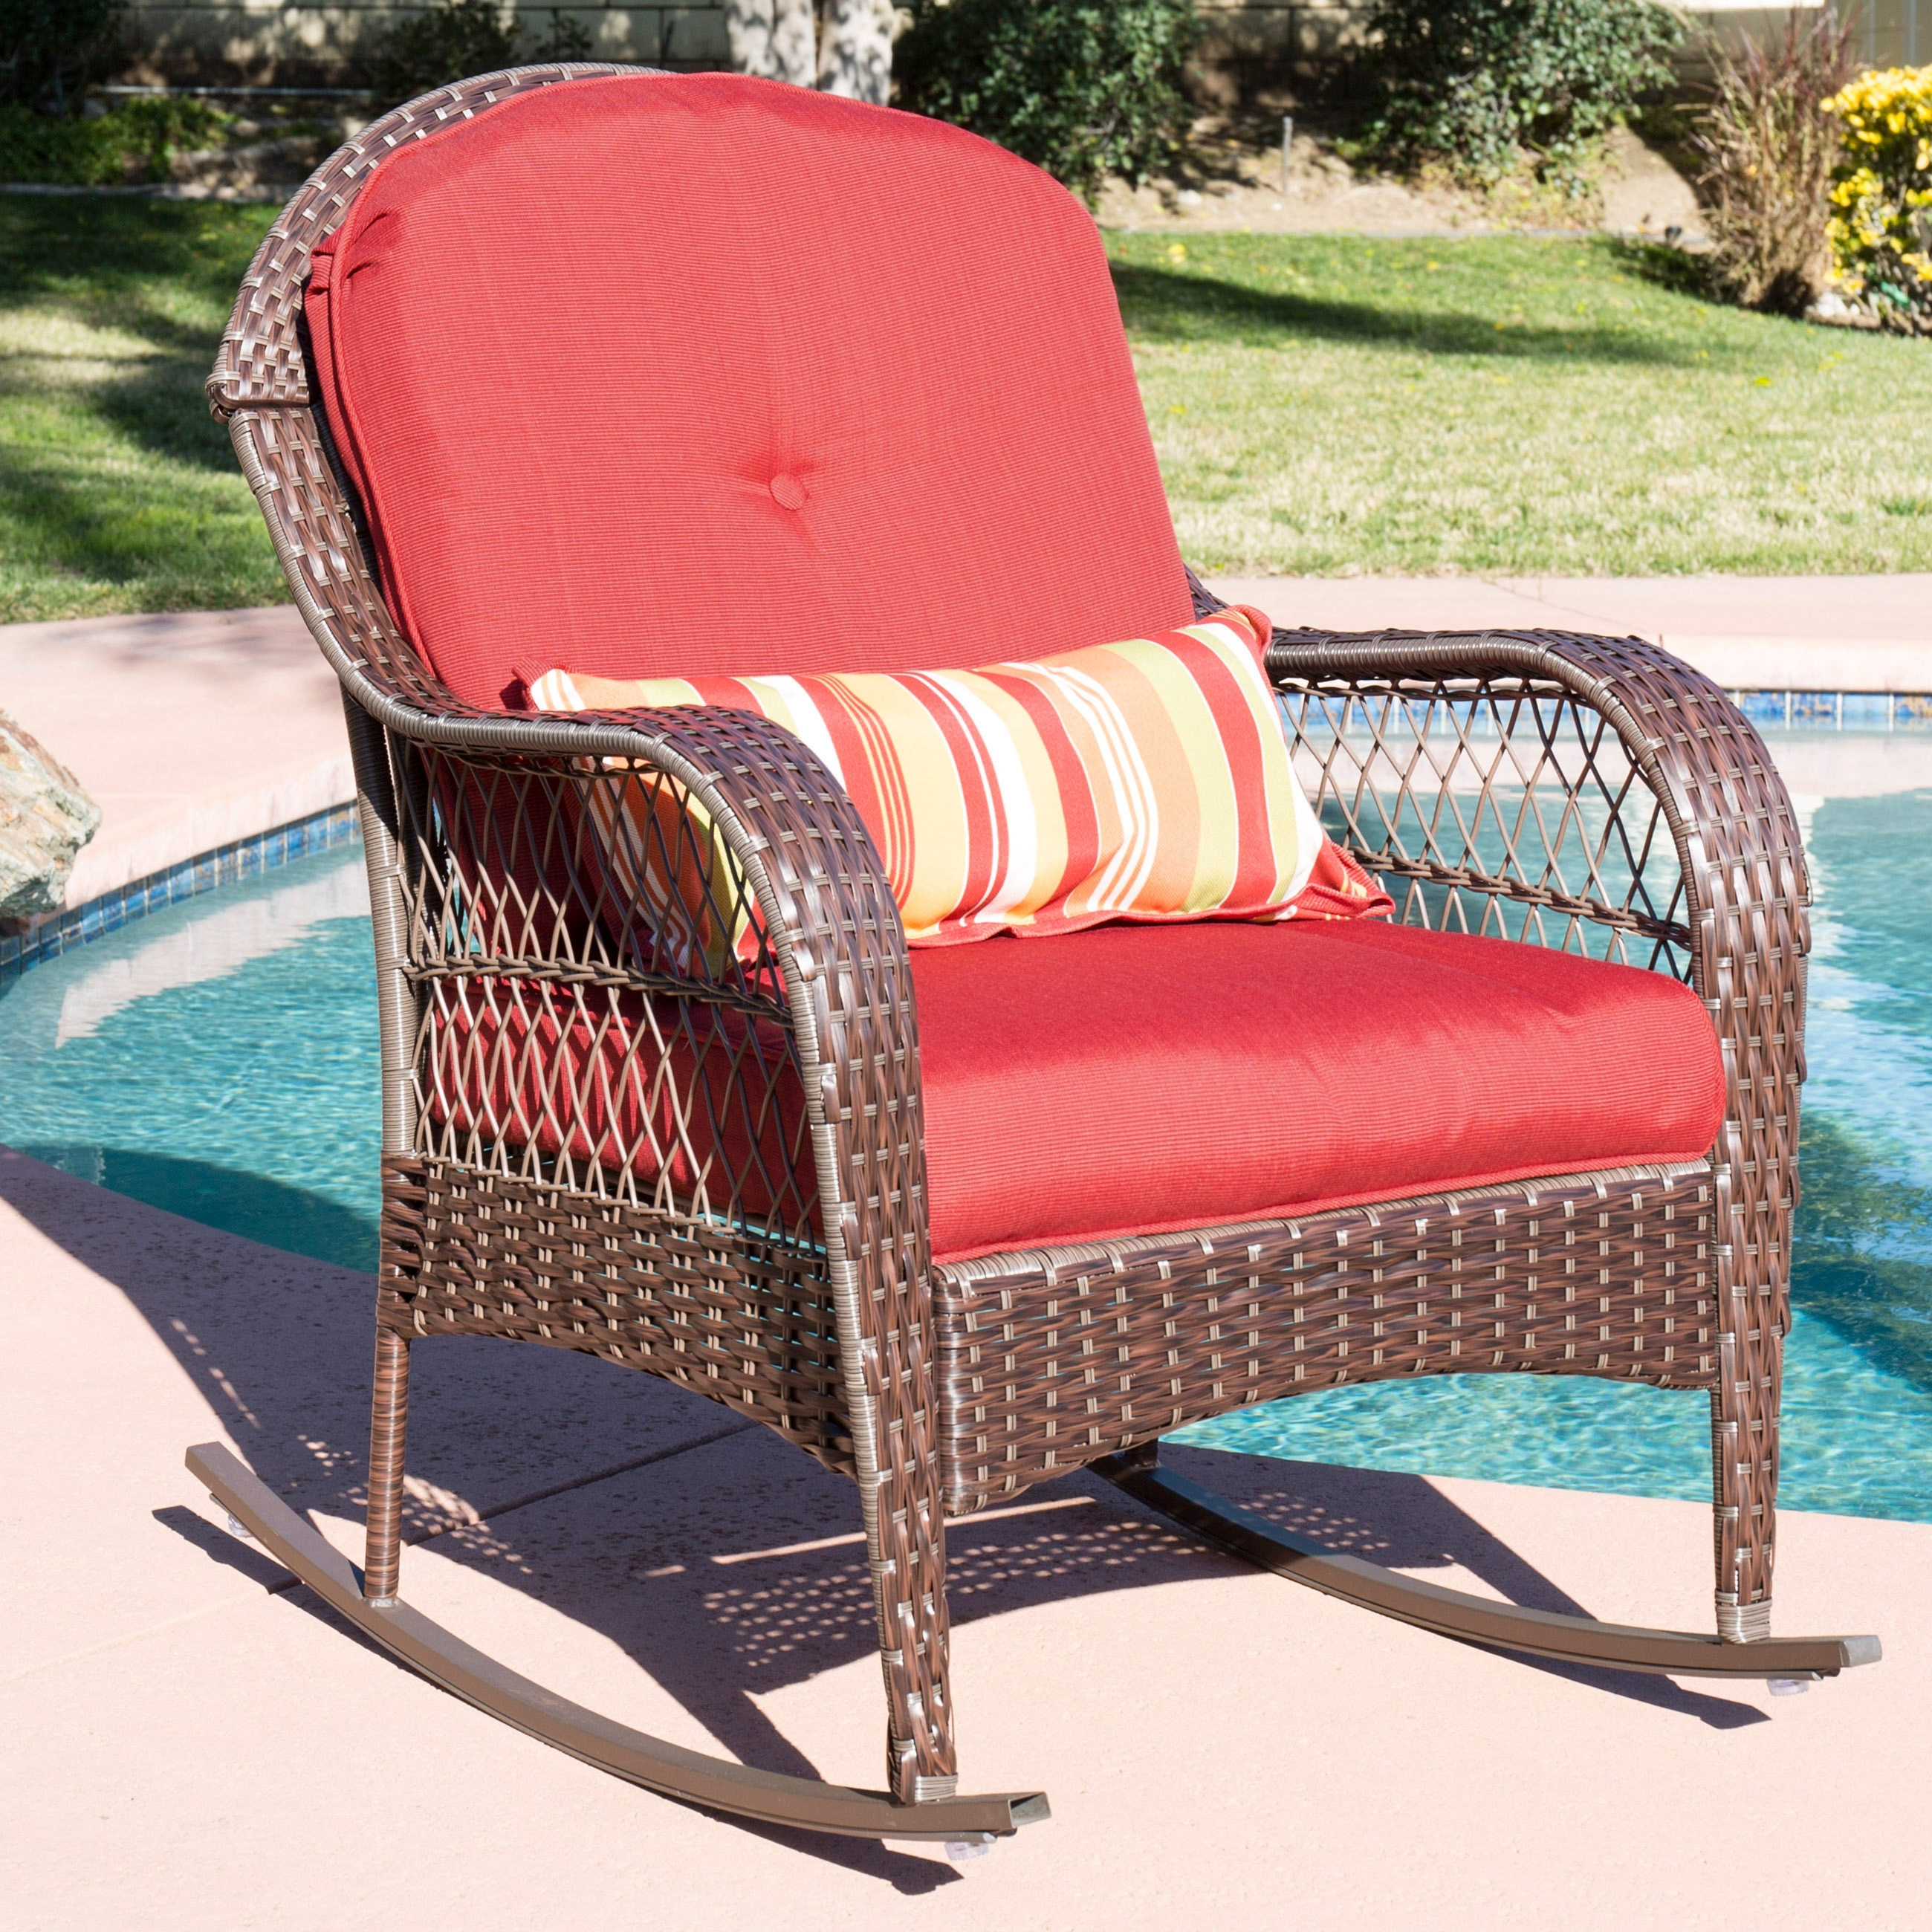 Widely Used All Weather Patio Rocking Chairs Throughout Best Choice Products Wicker Rocking Chair Patio Porch Deck Furniture (View 14 of 15)